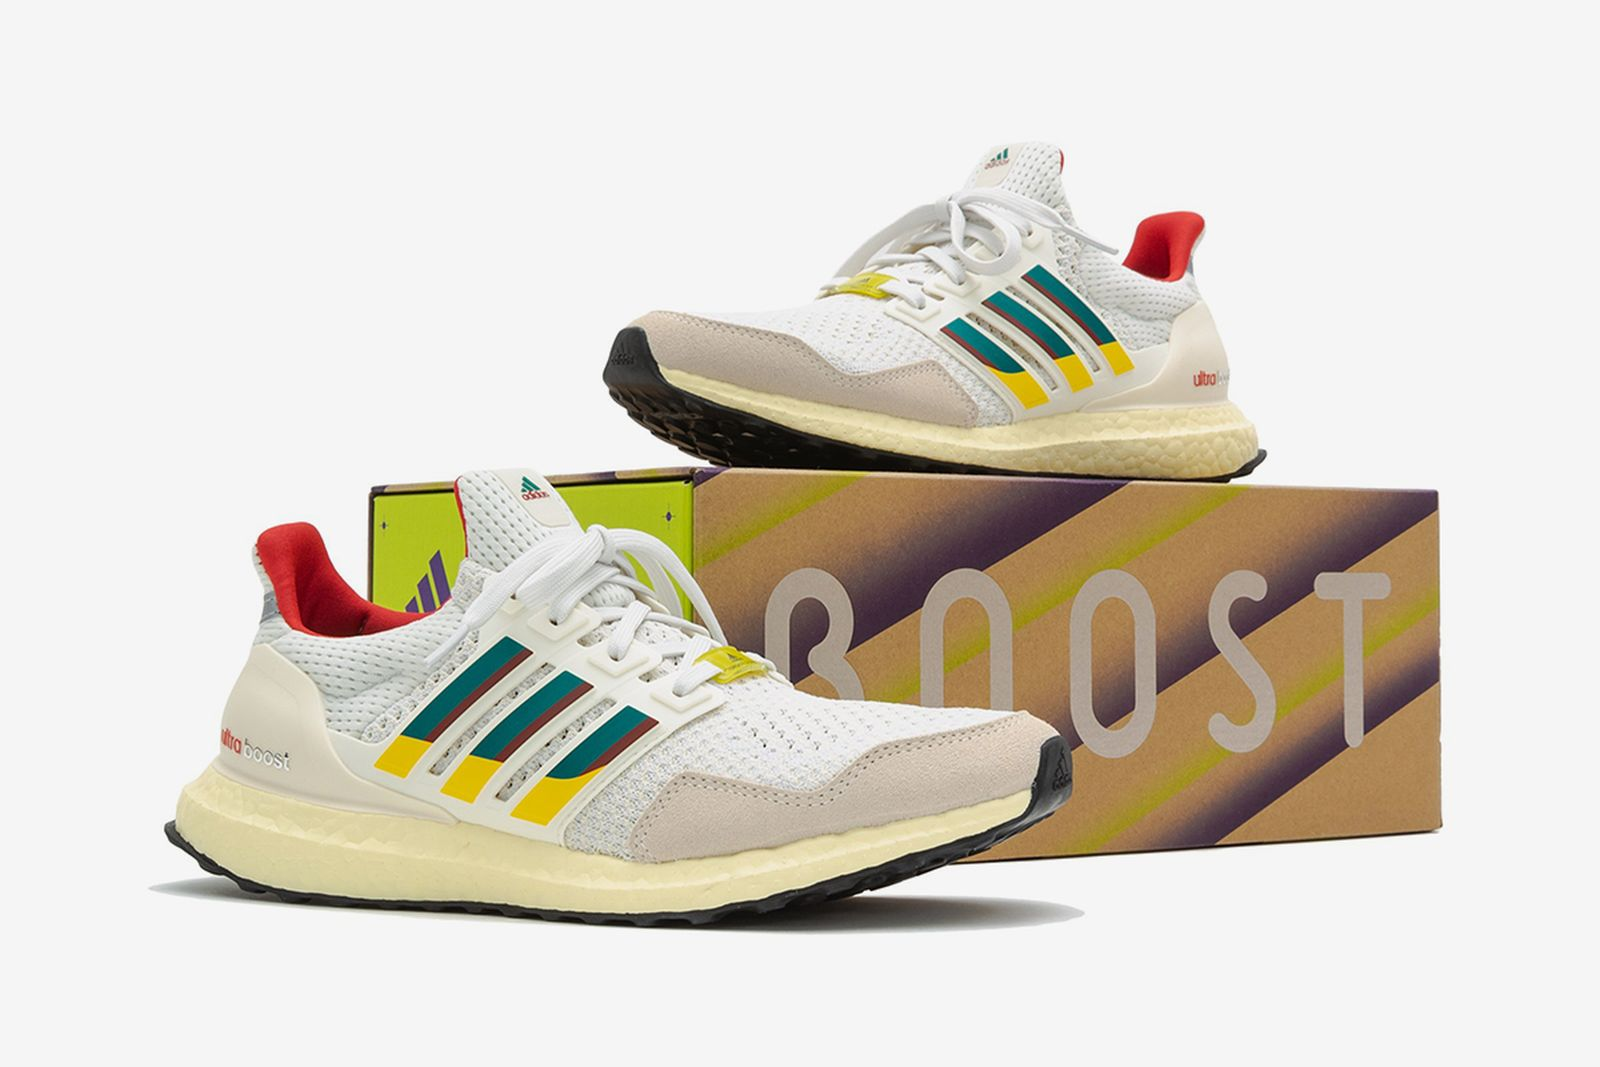 adidas-ultraboost-1-0-dna-zx-collection-release-date-price-01